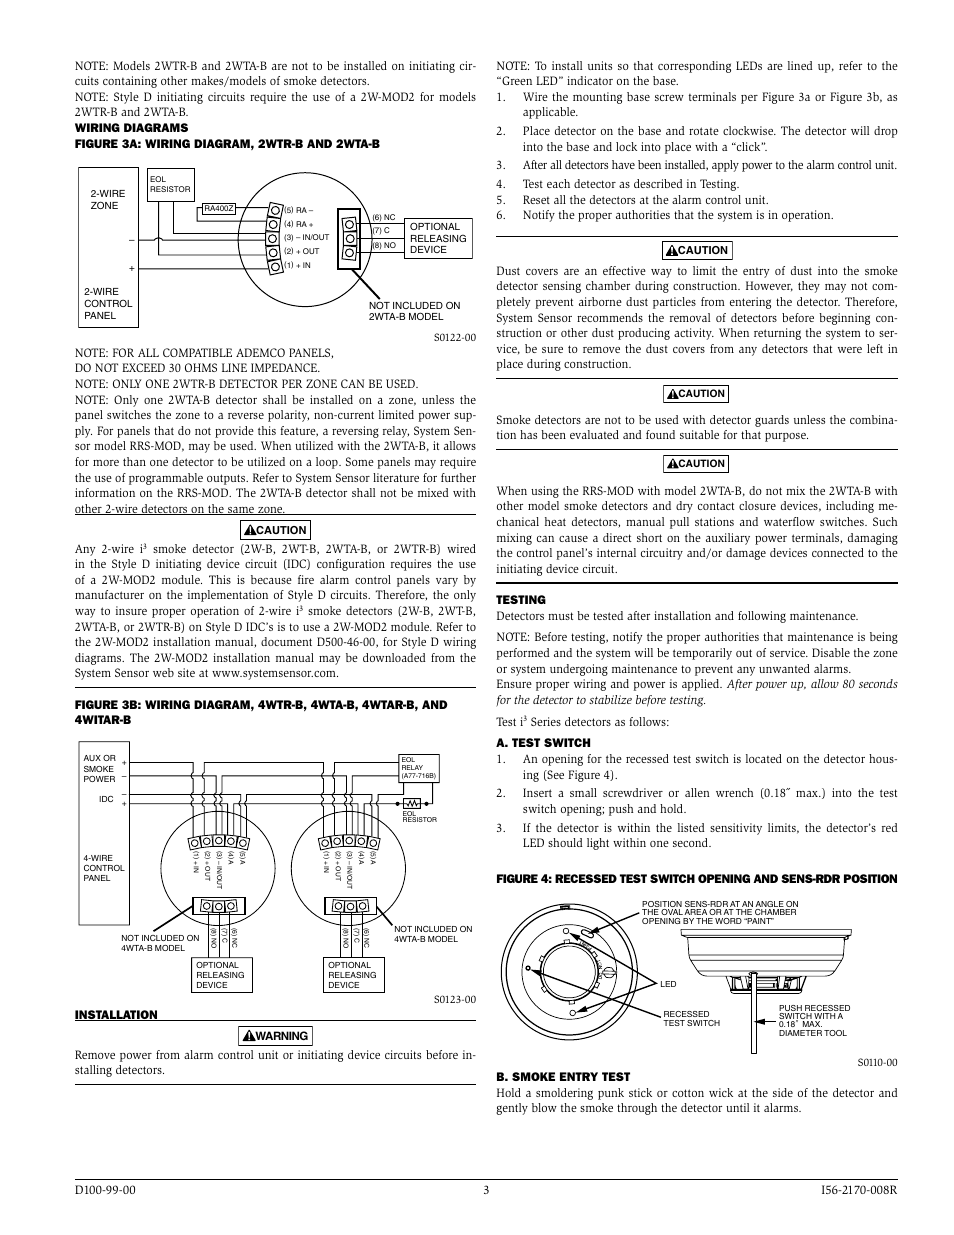 System Sensor I3 Series Thermal Detectors User Manual